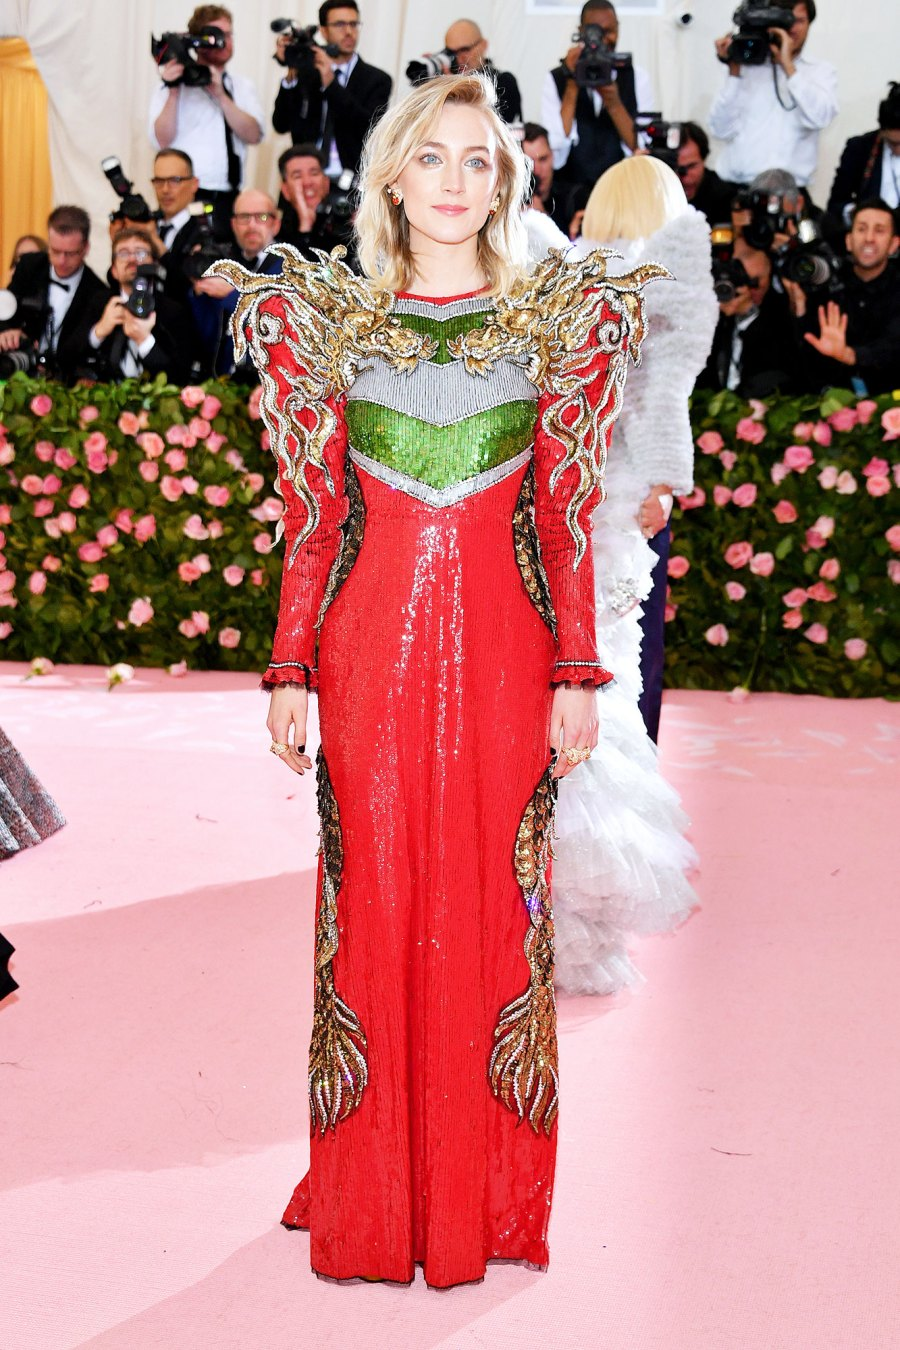 Met Gala 2018 Red Carpet Fashion, See Stars Dresses, Gowns